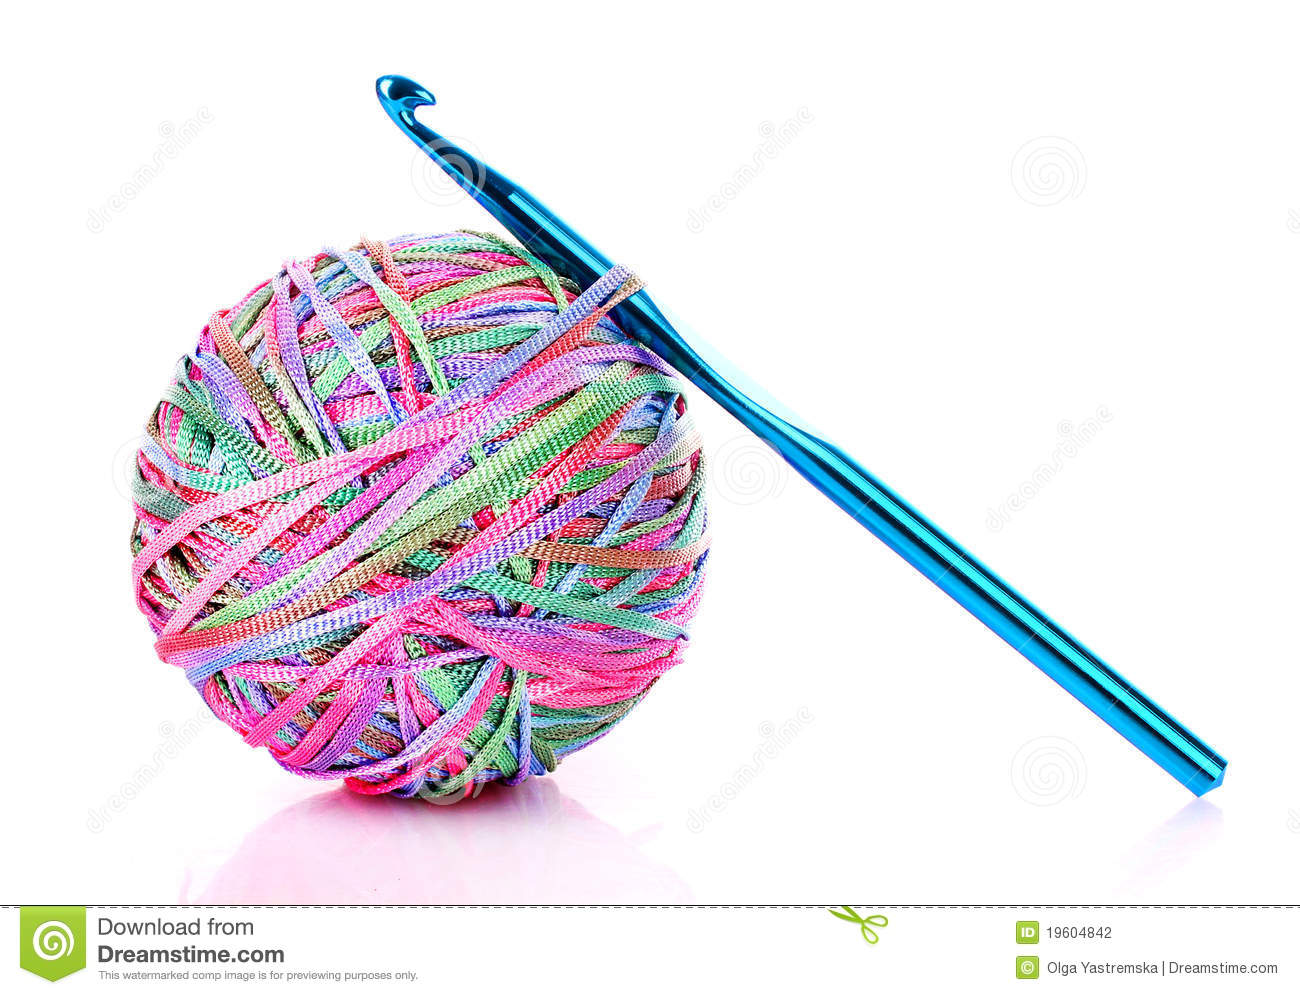 Crocheting Needles And Yarn crochet hooks or knitting needles clipart ...